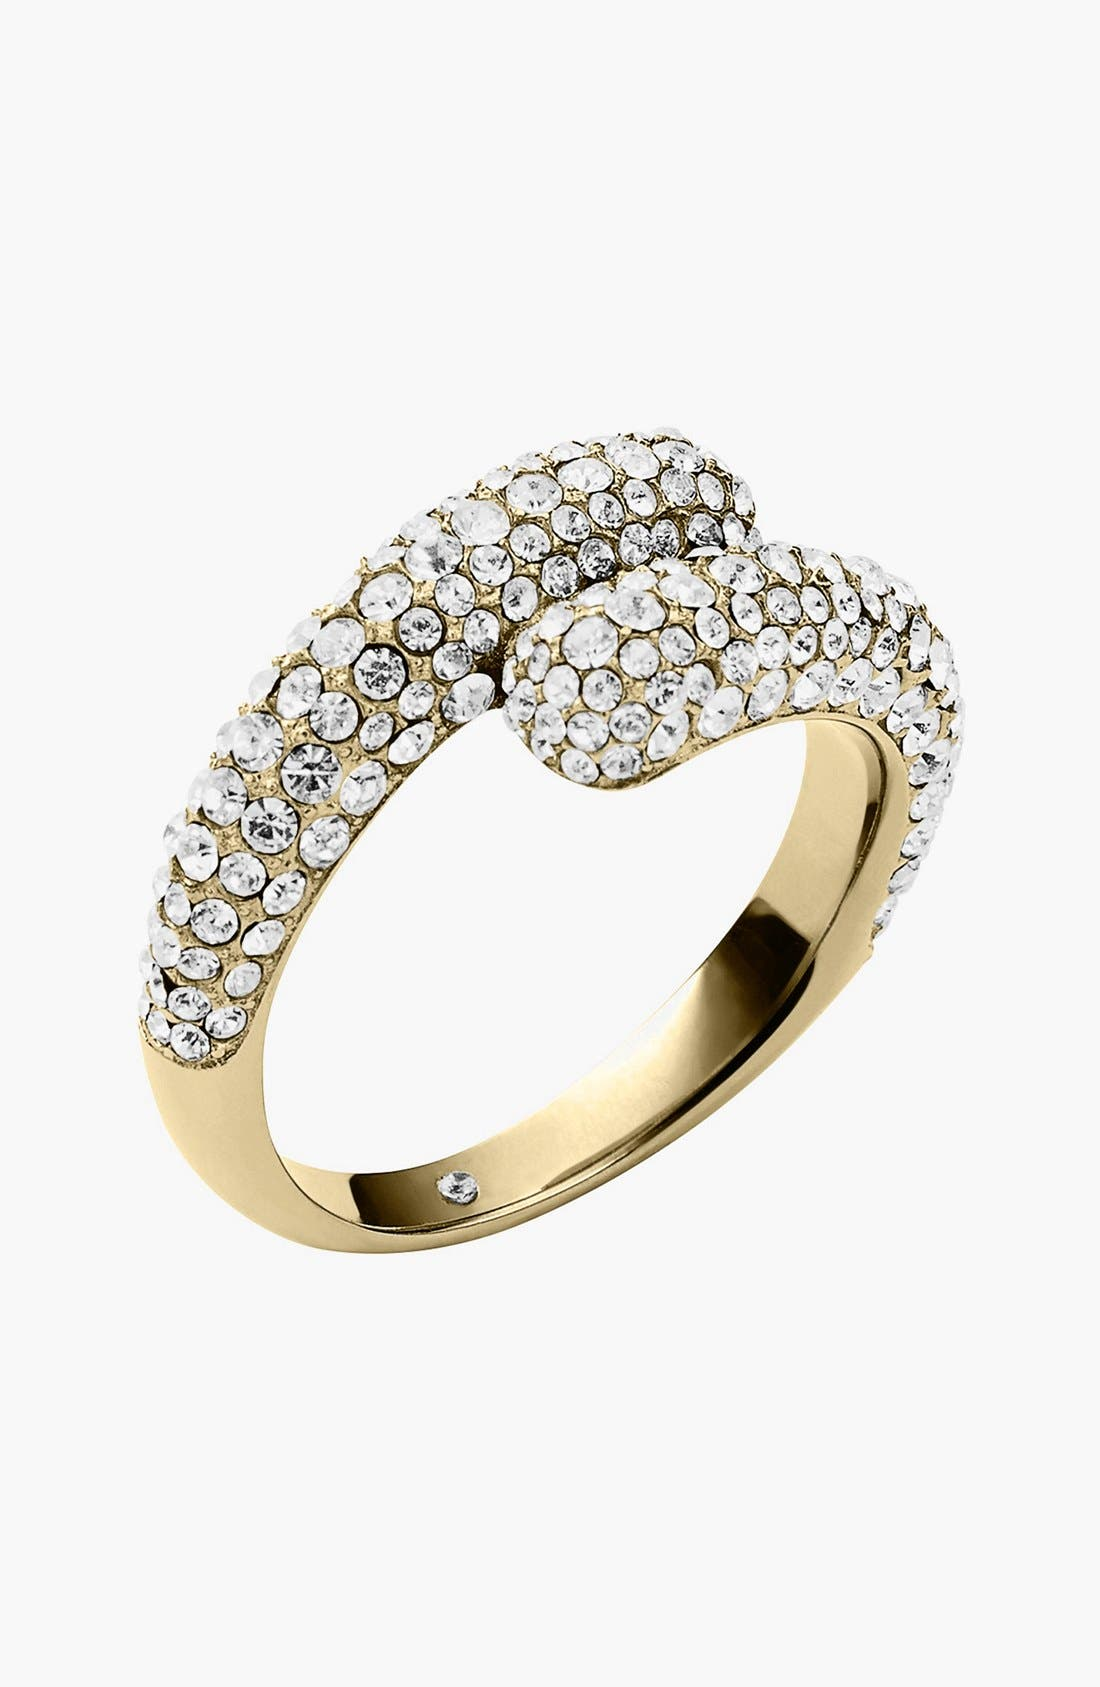 Main Image - Michael Kors Pavé Wrap Ring